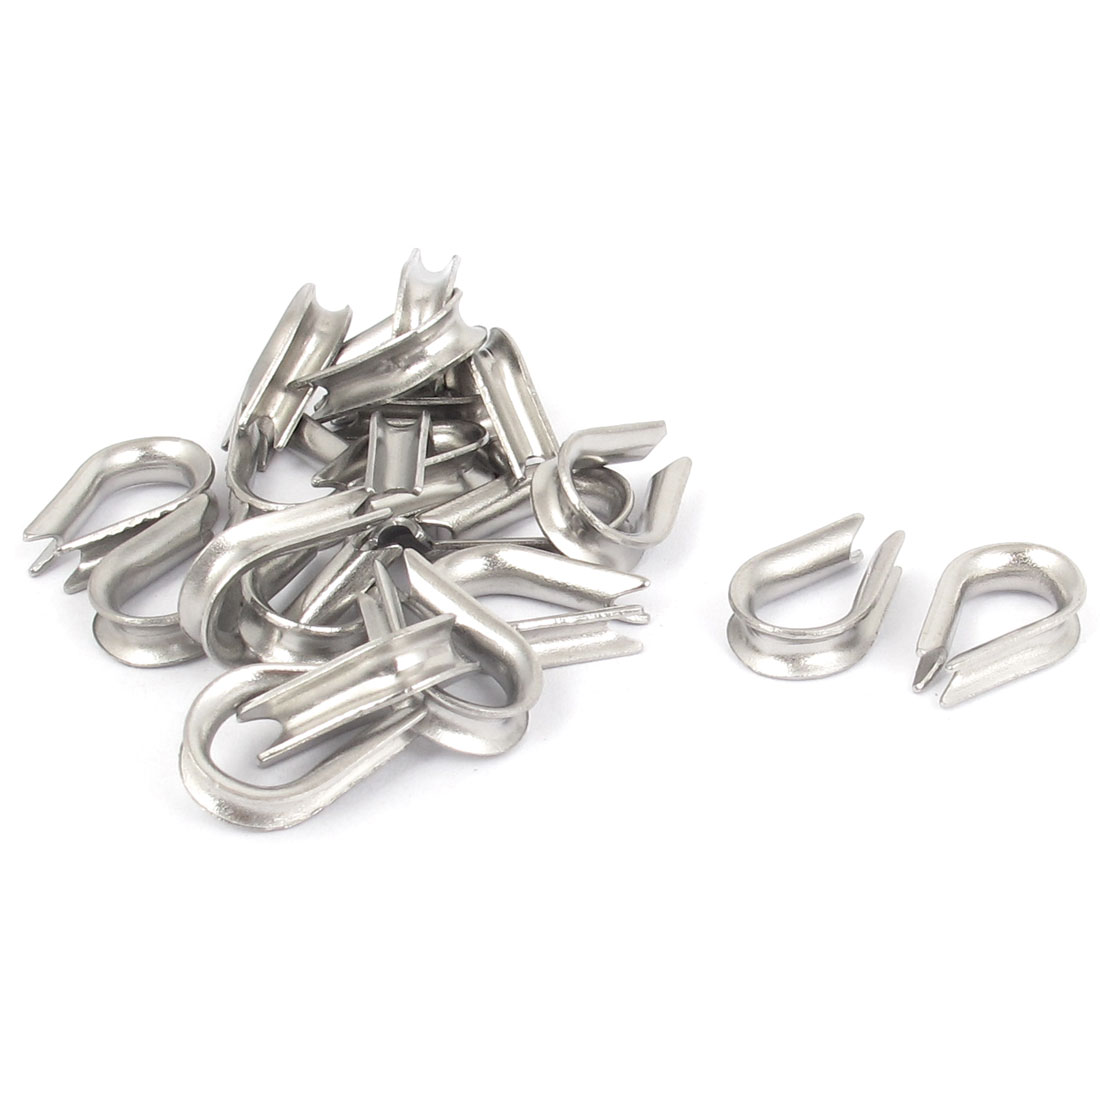 "304 Stainless Steel 2mm 5/64"" Wire Rope Cable Thimbles Silver Tone 20pcs"